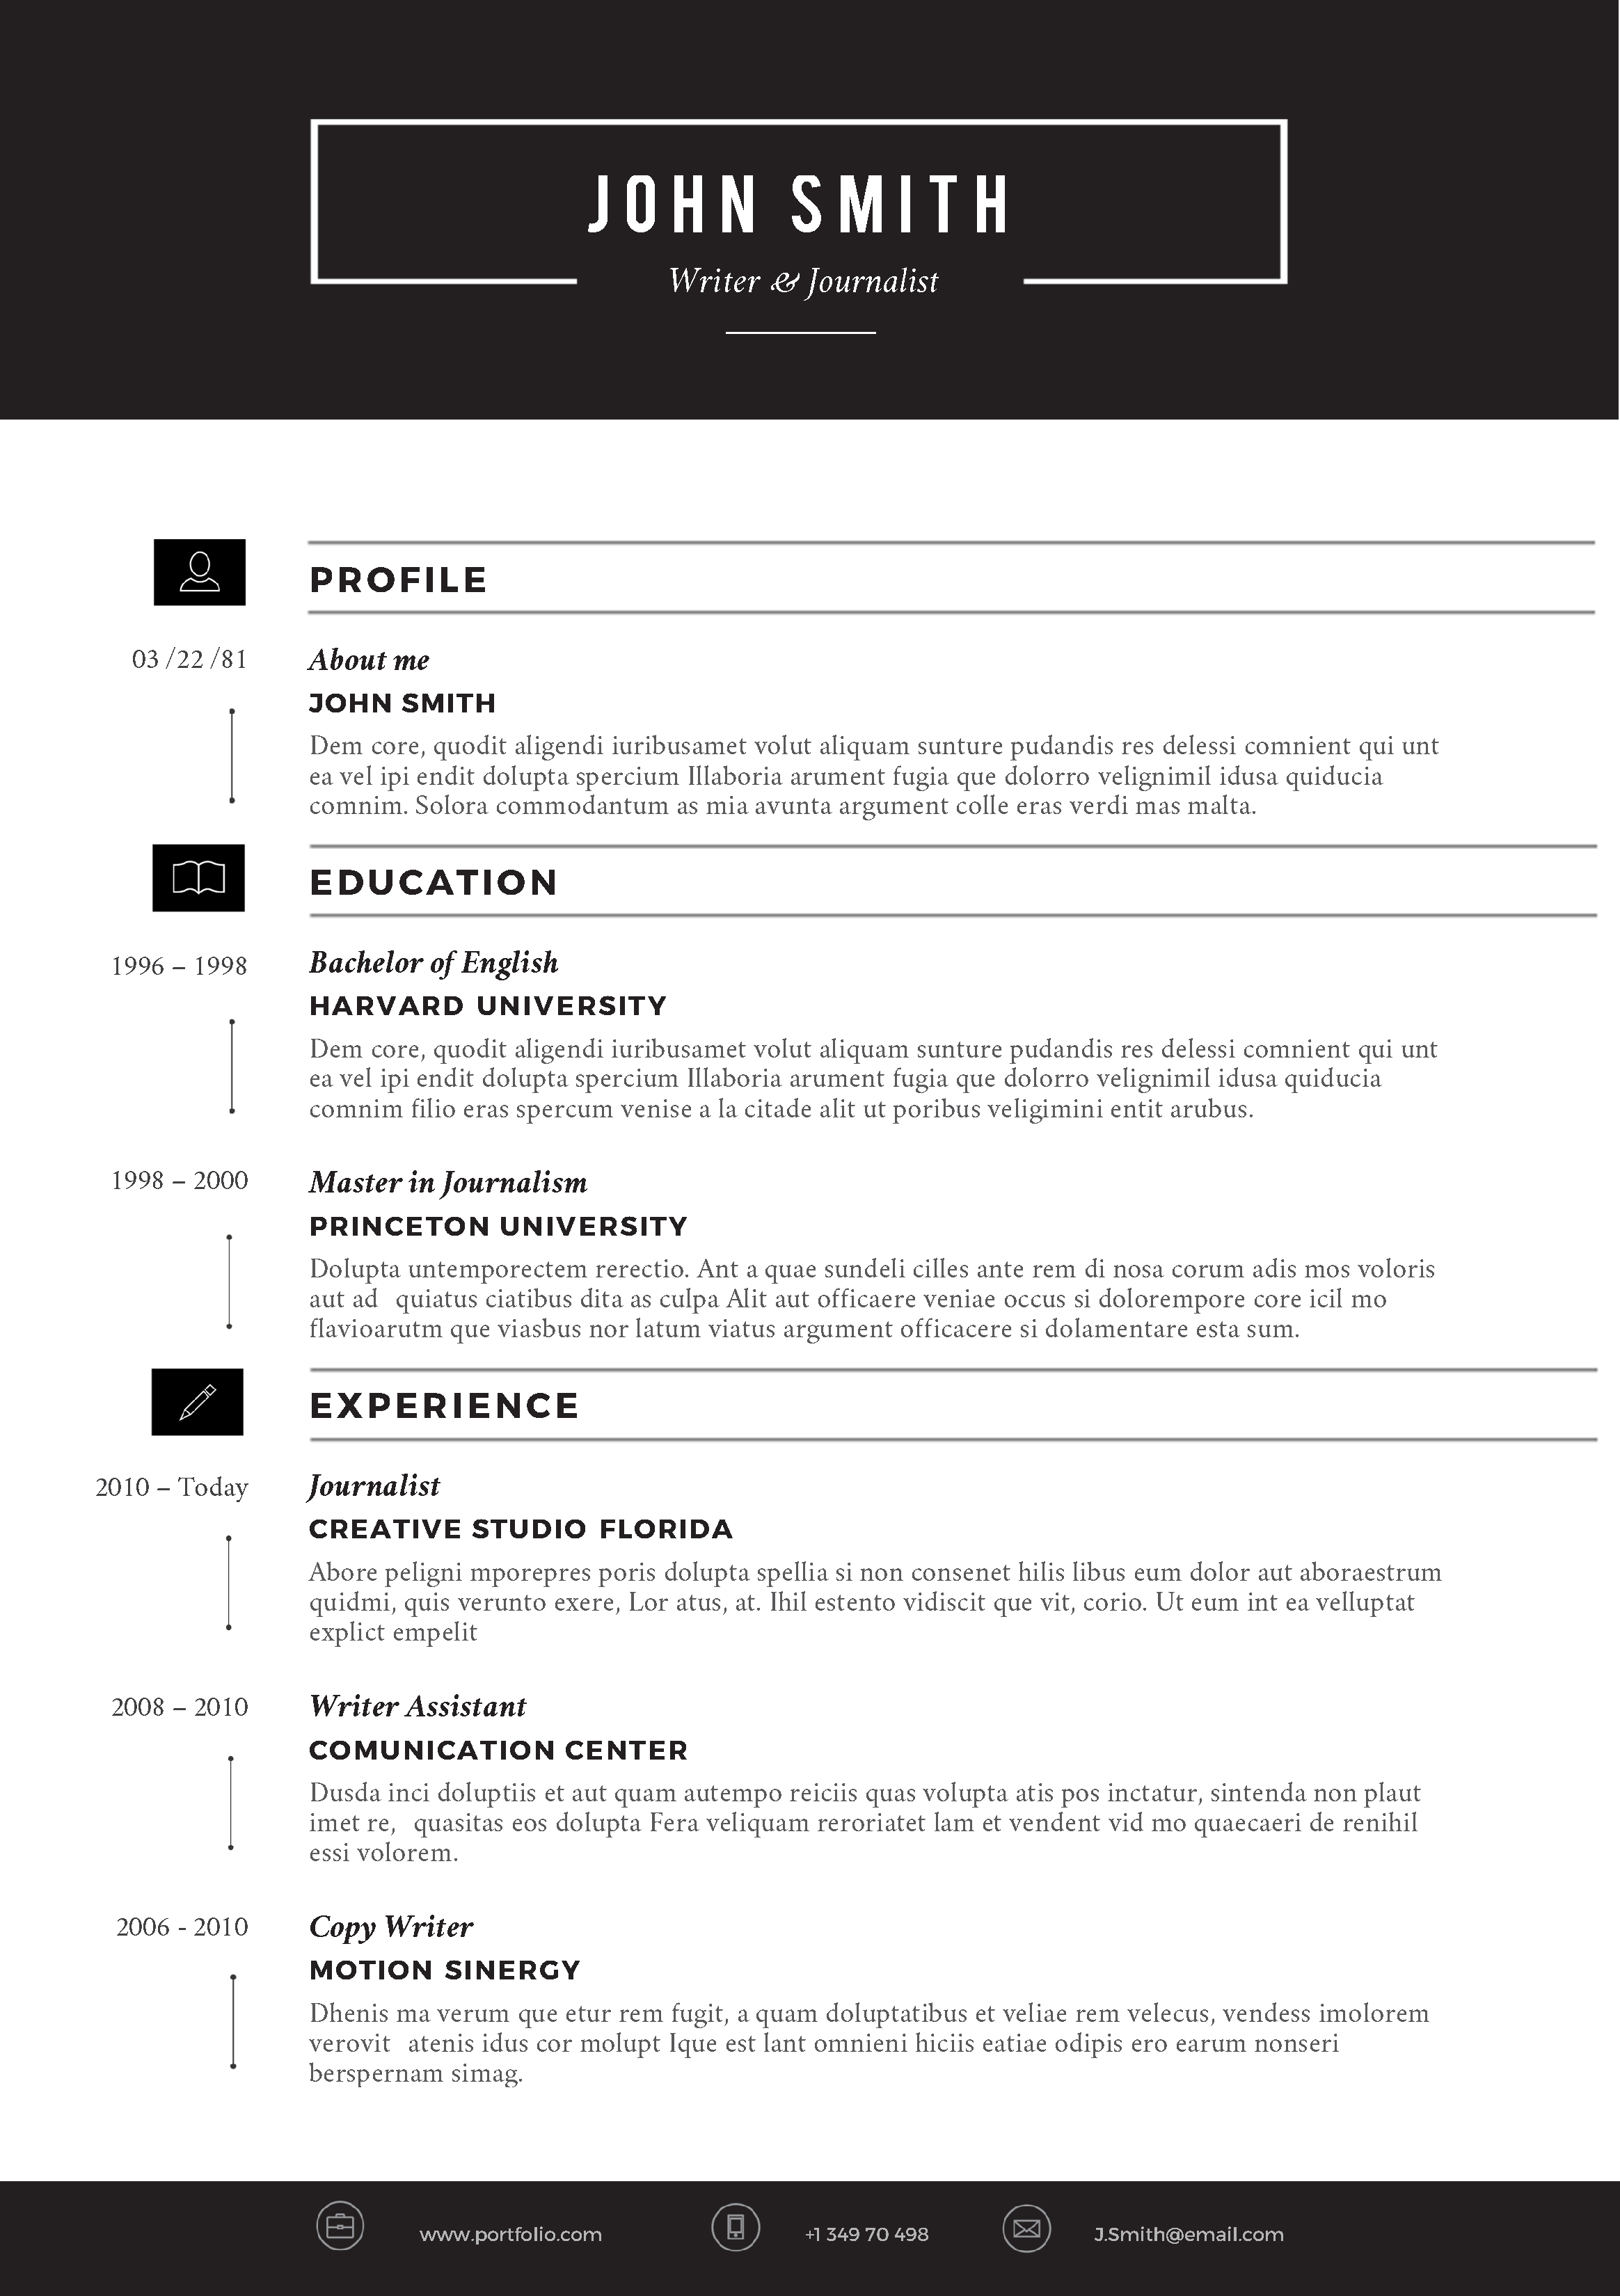 resume template with white space